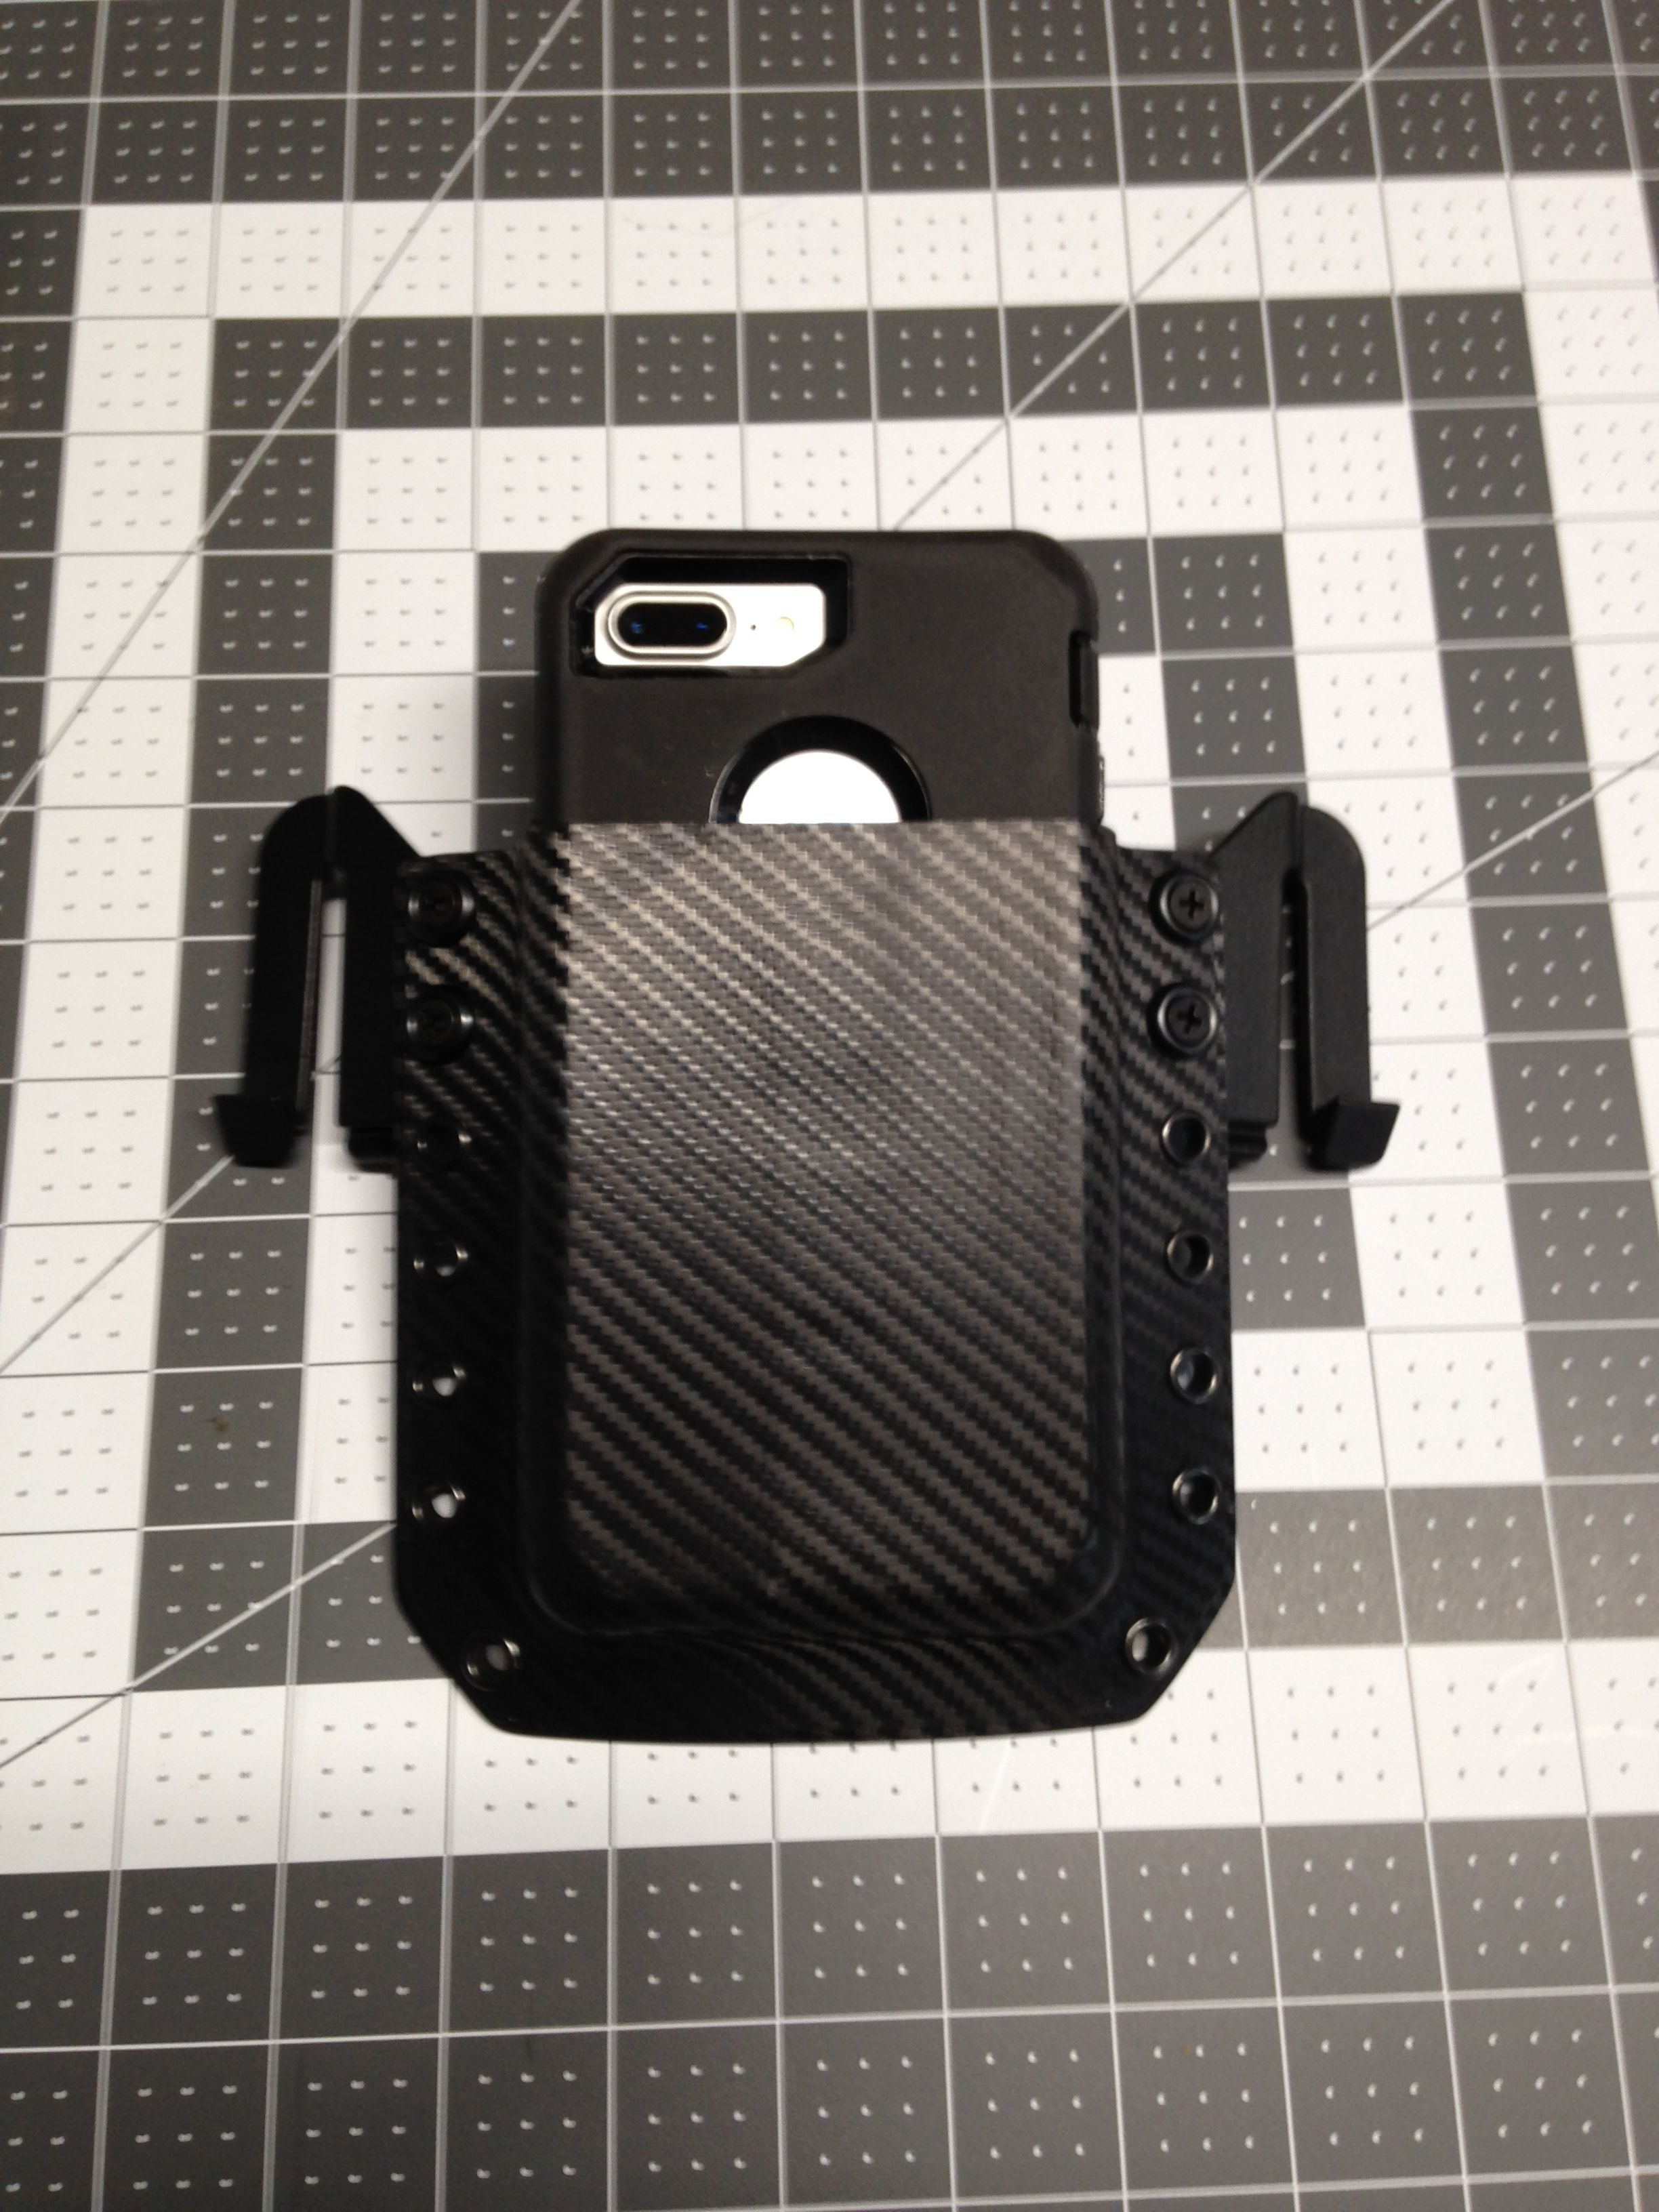 competitive price 77f61 30a08 iPhone 7 plus custom kydex Holster | Cell phone holsters | Phone ...